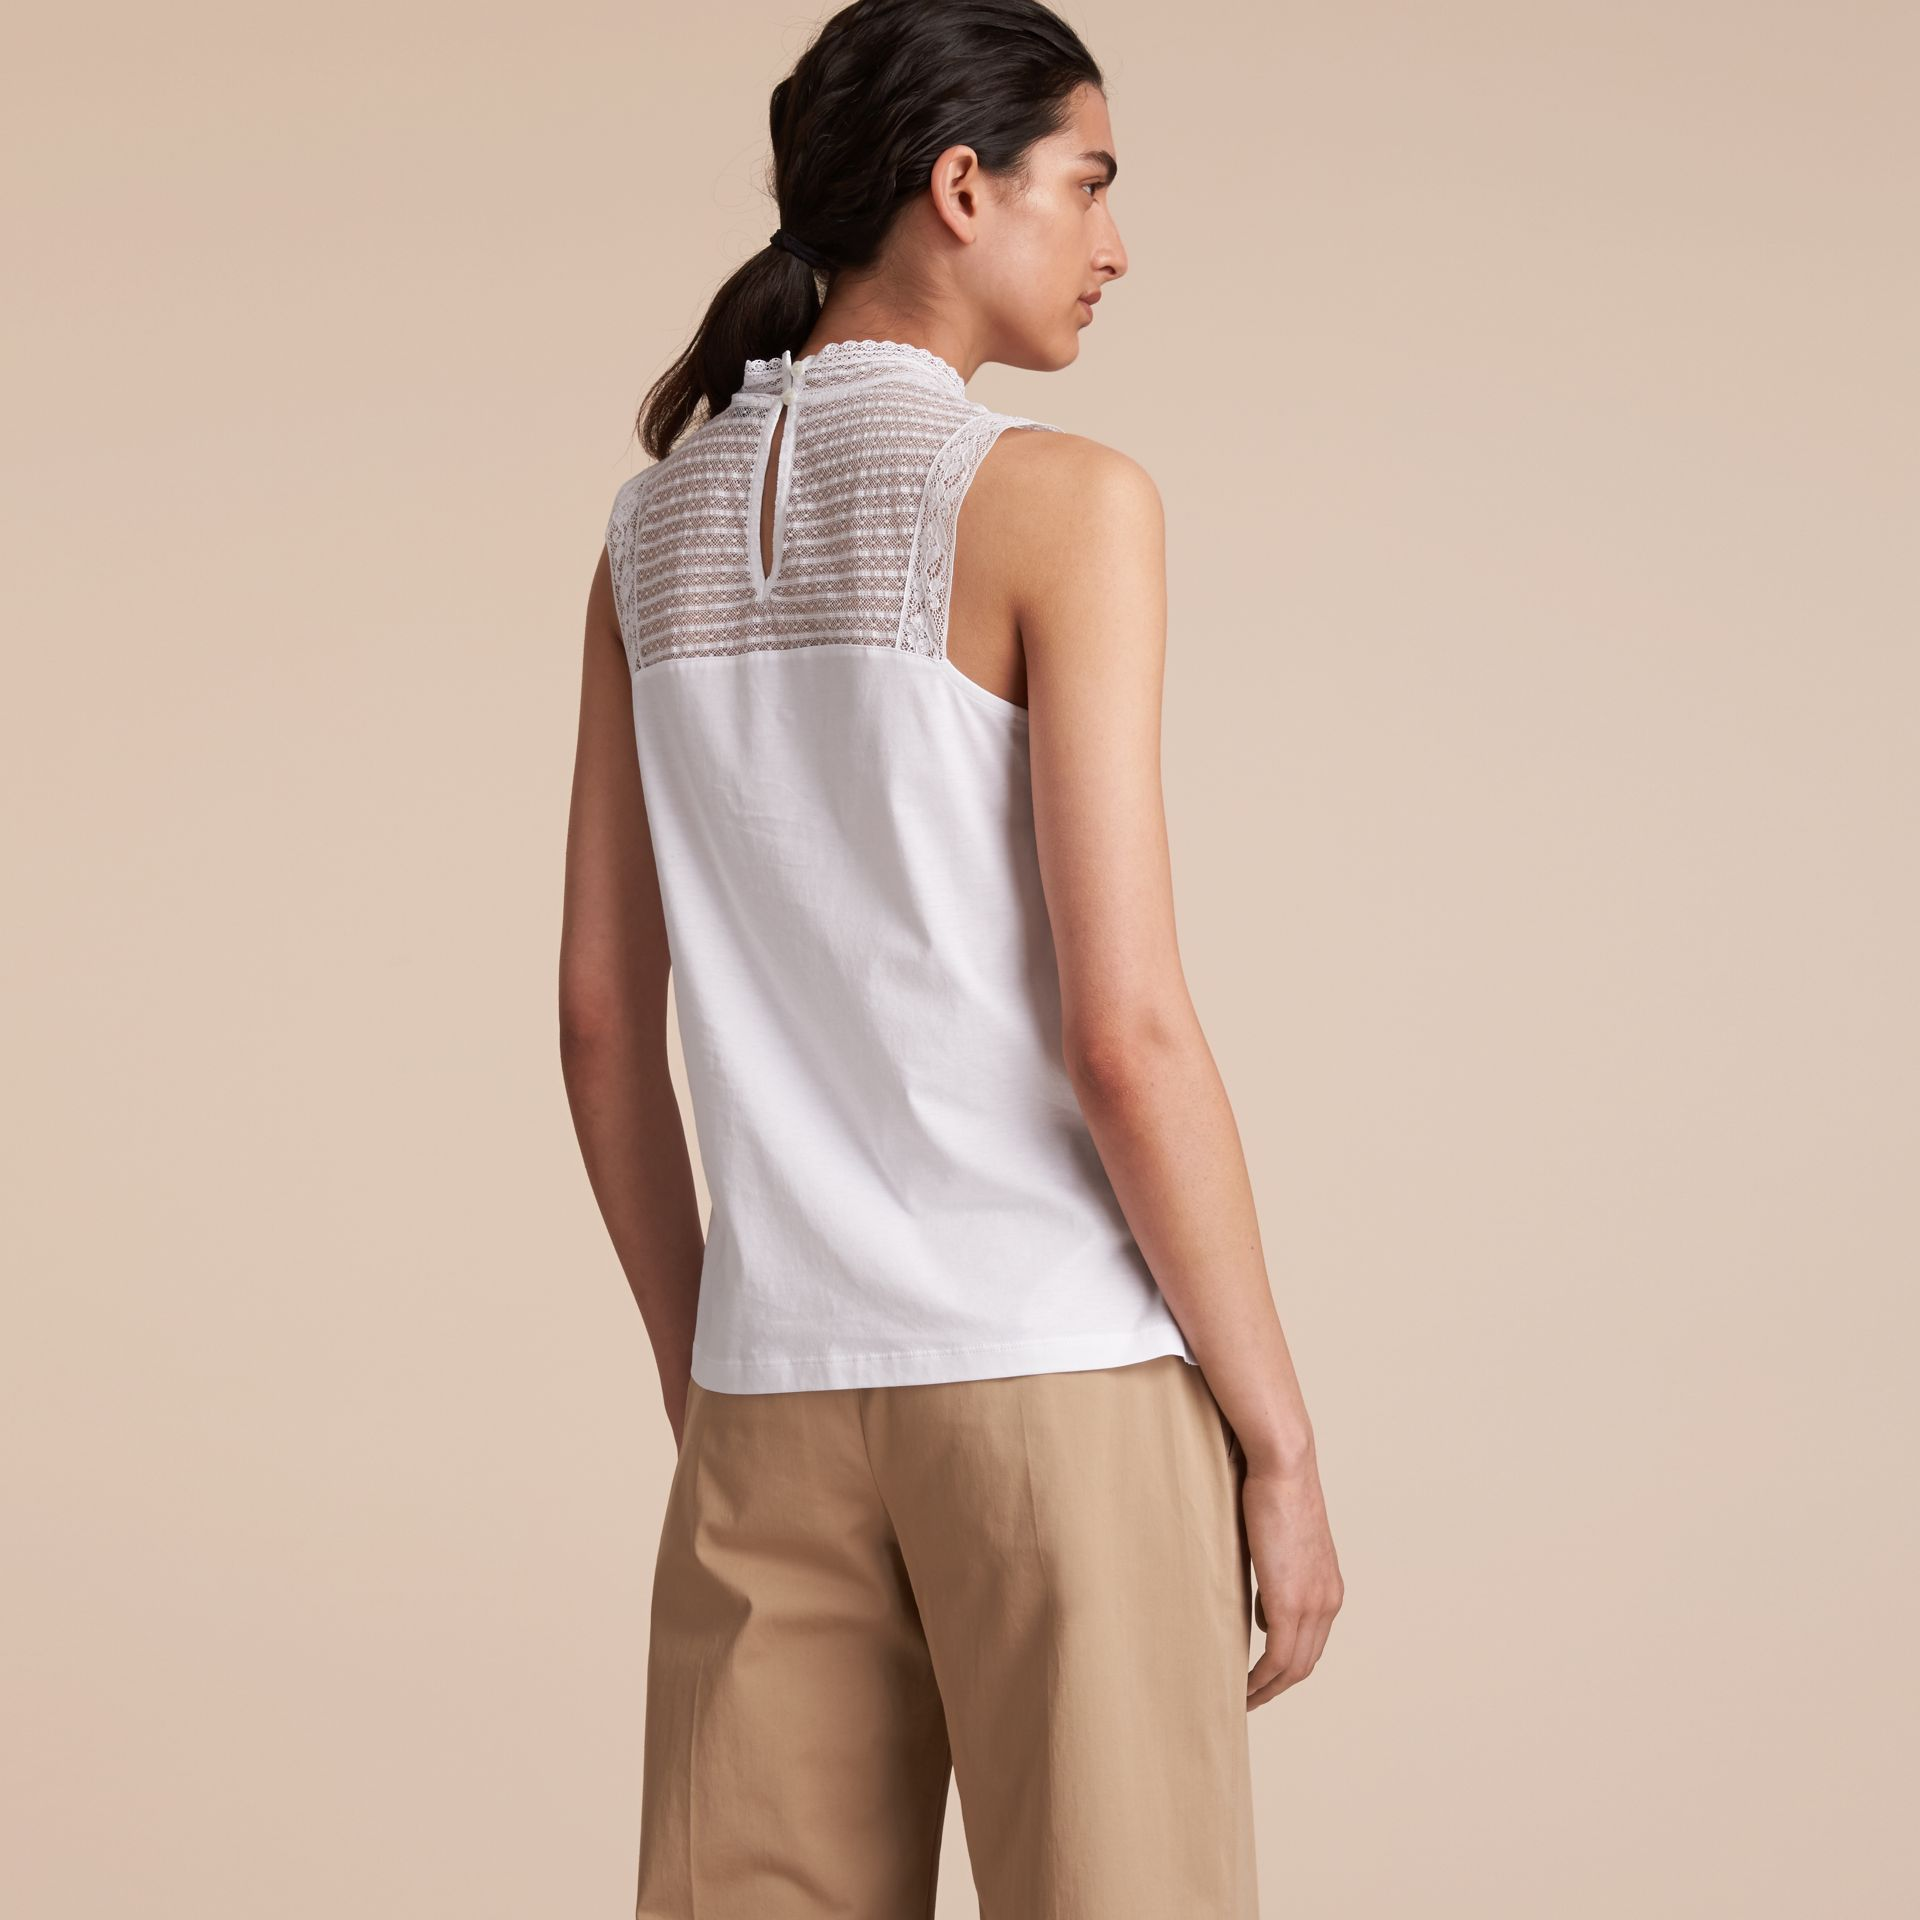 Sleeveless Lace Panel Cotton Top in White - Women | Burberry Canada - gallery image 2